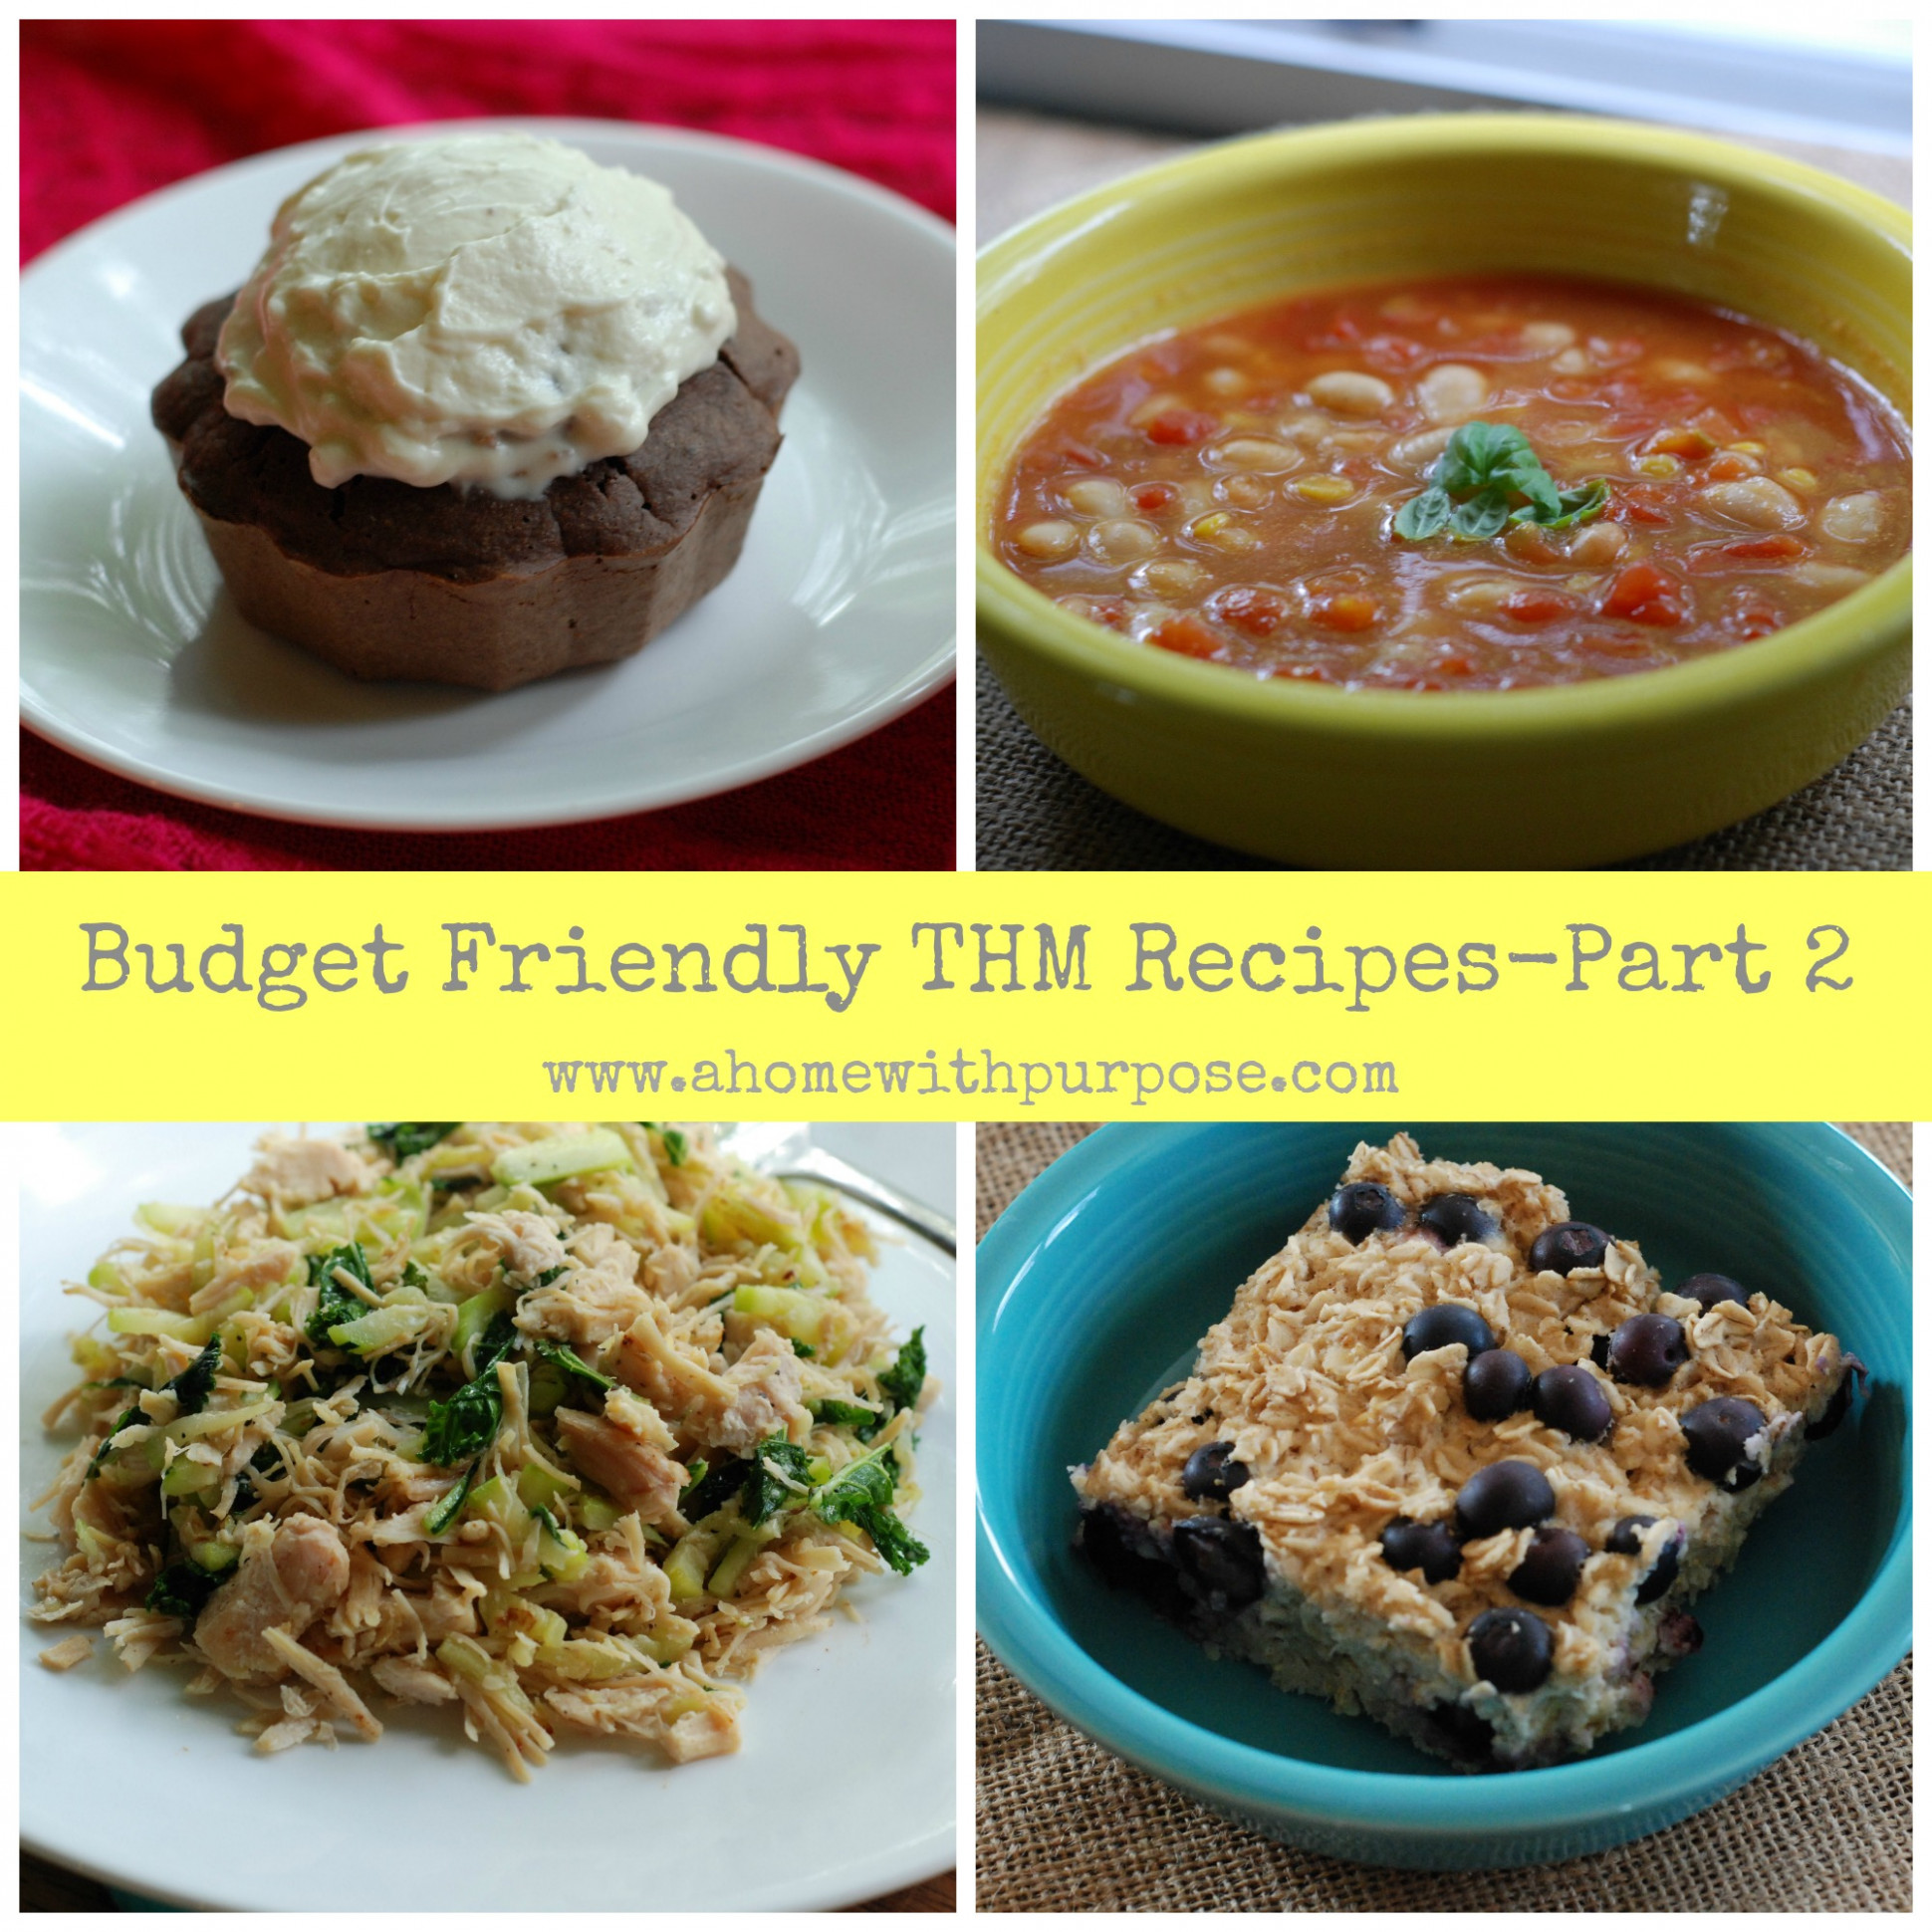 Budget Friendly THM Recipes- Part 13 | A Home with Purpose - healthy recipes on a budget